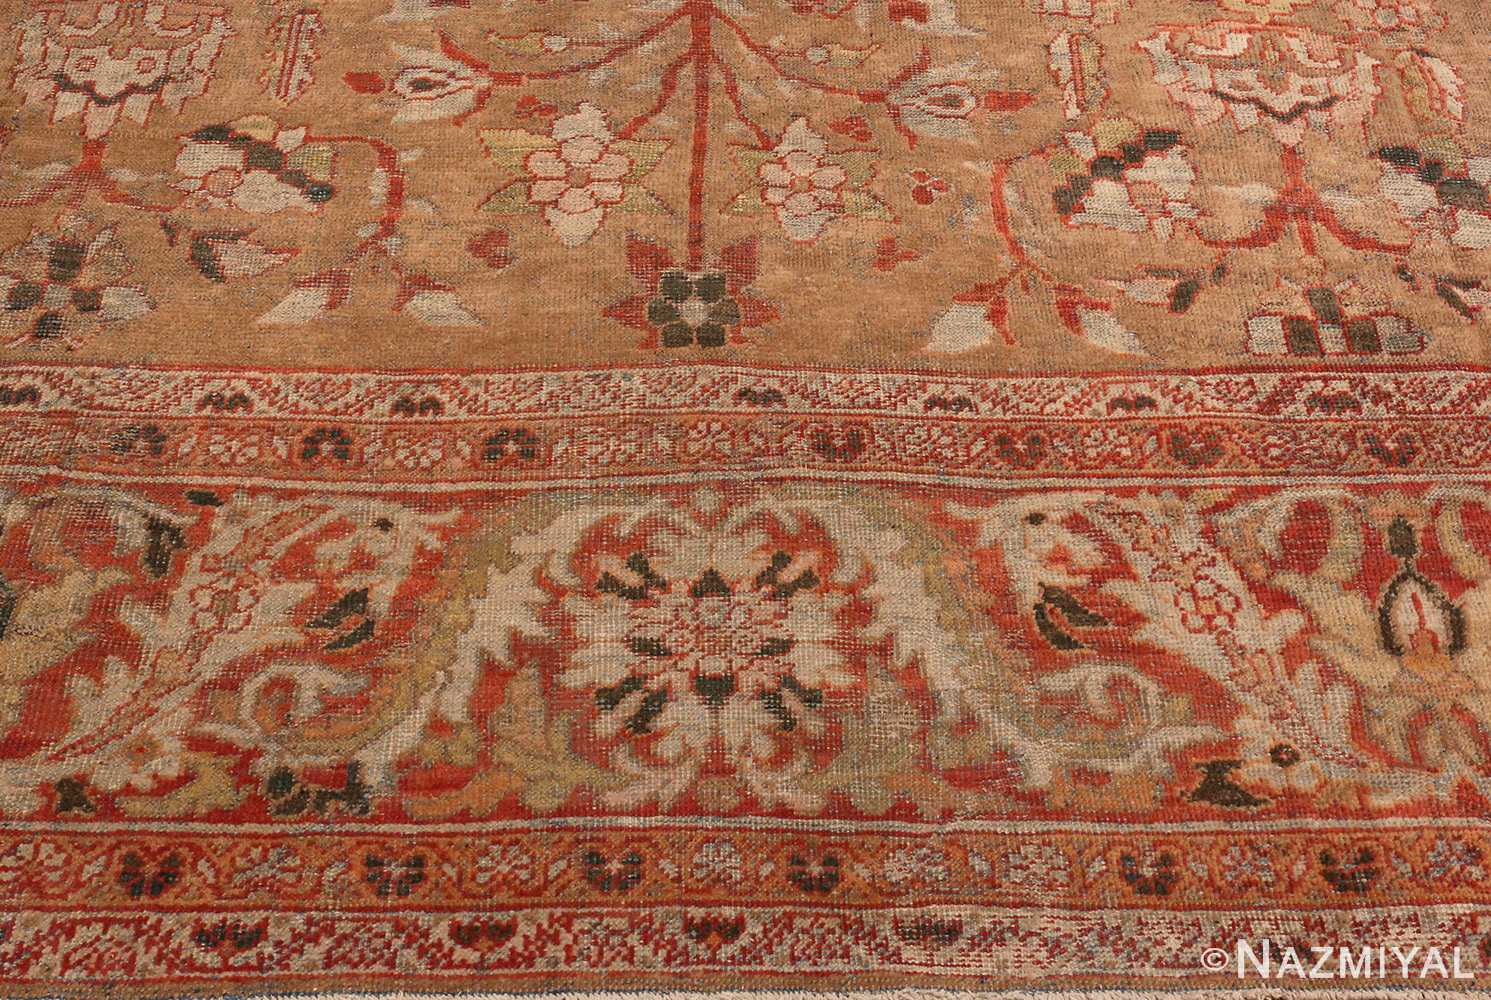 Picture of the Border Of Antique Persian Sultanabad Rug #48944 from Nazmiyal Antique Rugs in NYC